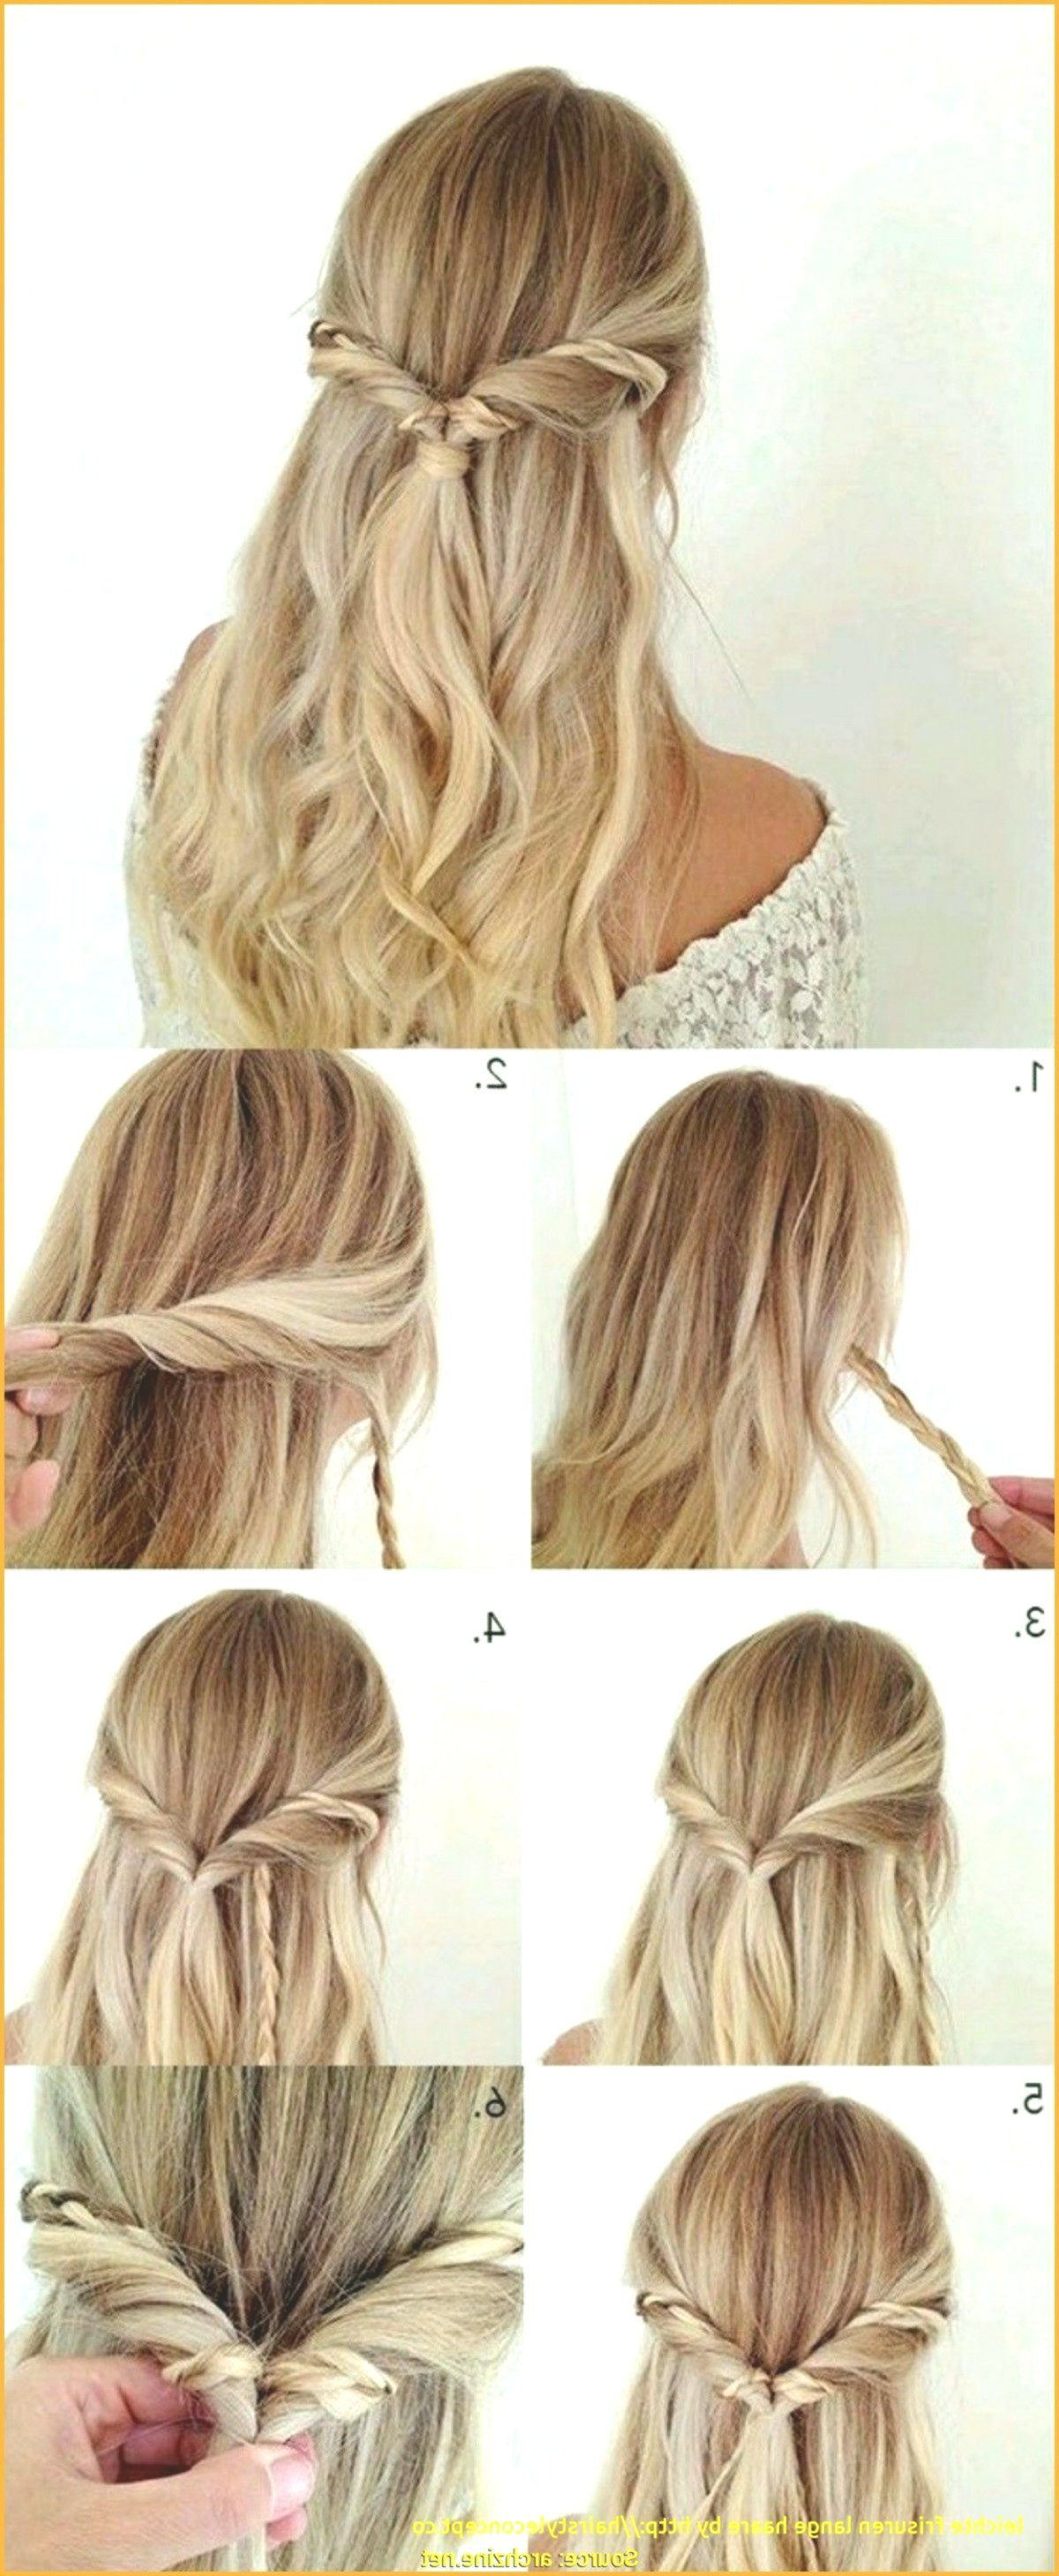 terribly cool hairstyles for curly hair plan-unique hairstyles for curly hair construction